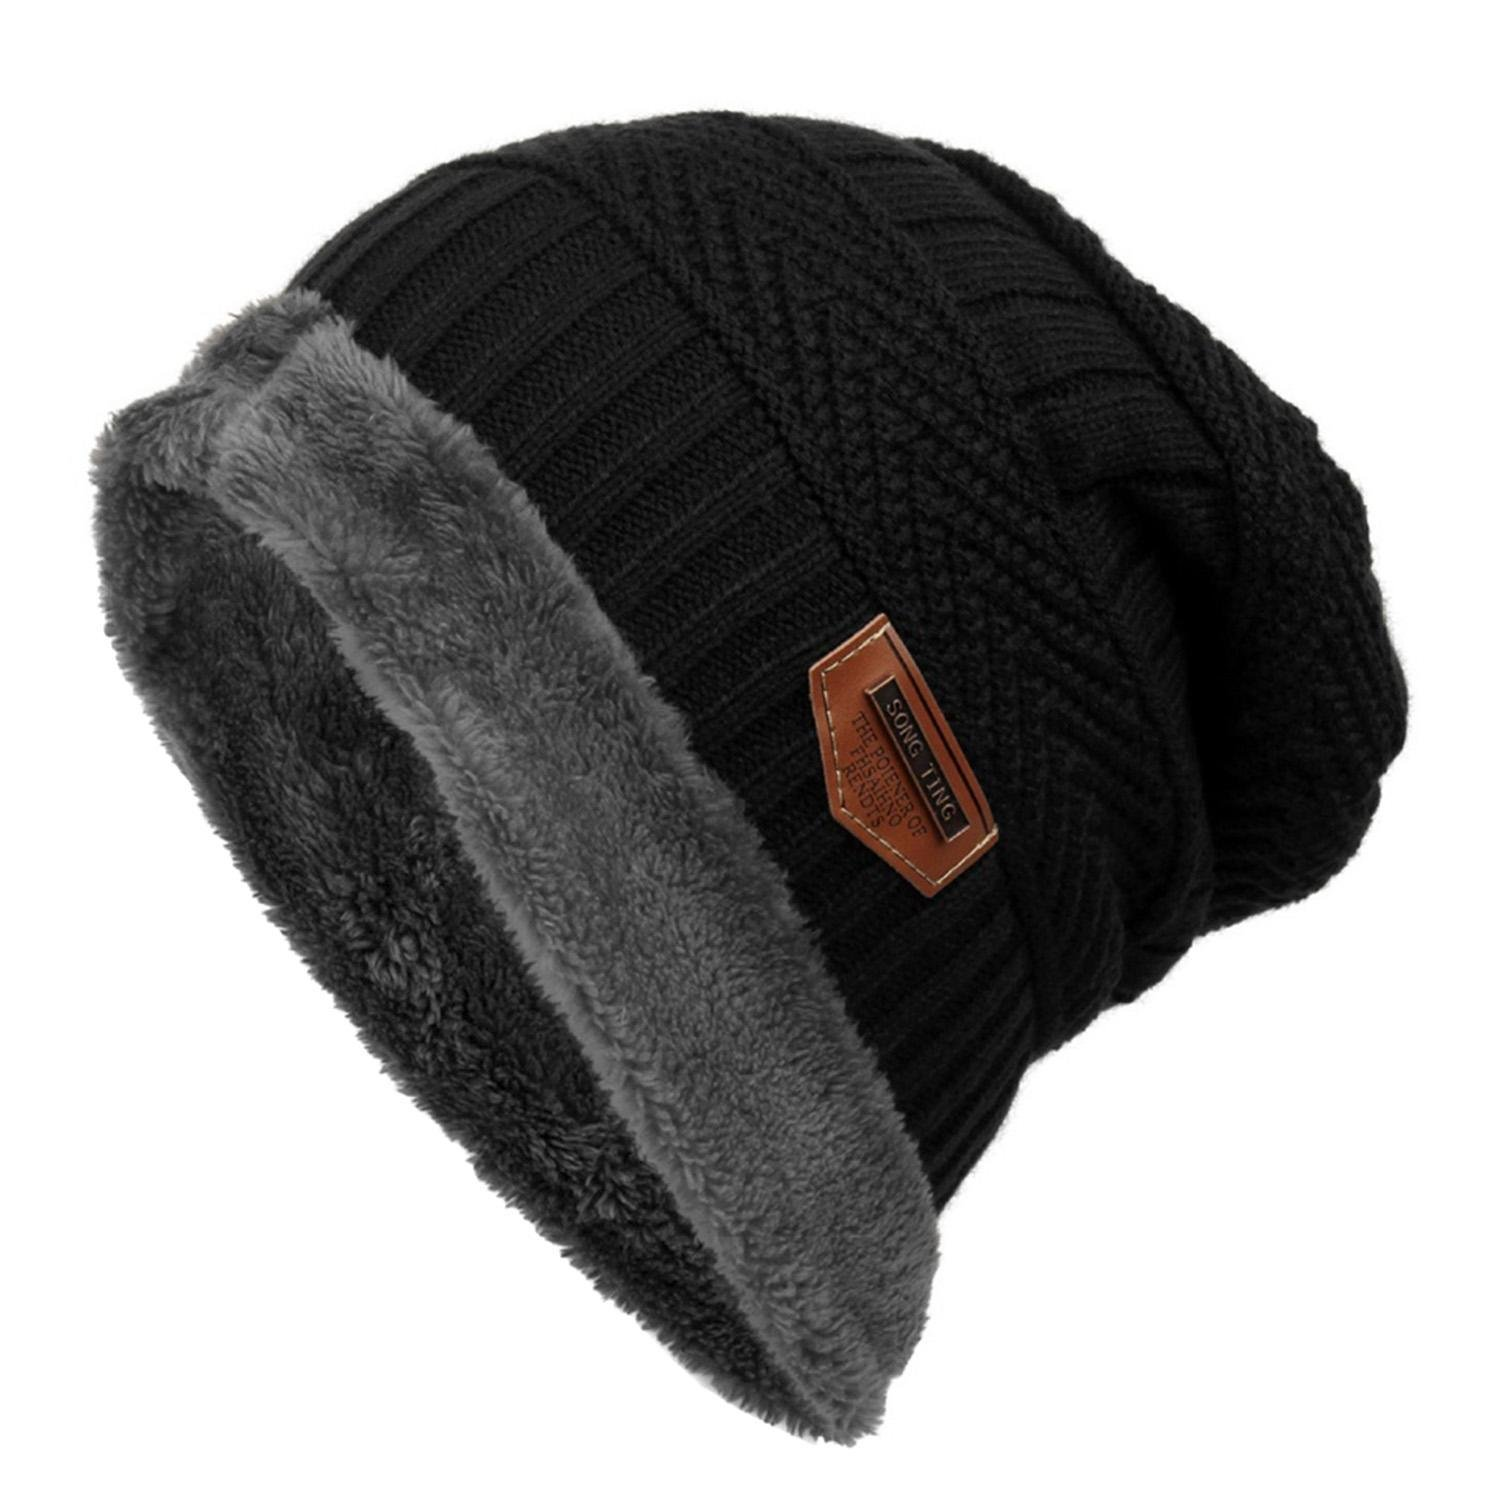 olseti Women Men Fashion Fleece Contrast Color Beanie Knitted Warm Winter Hats & Caps